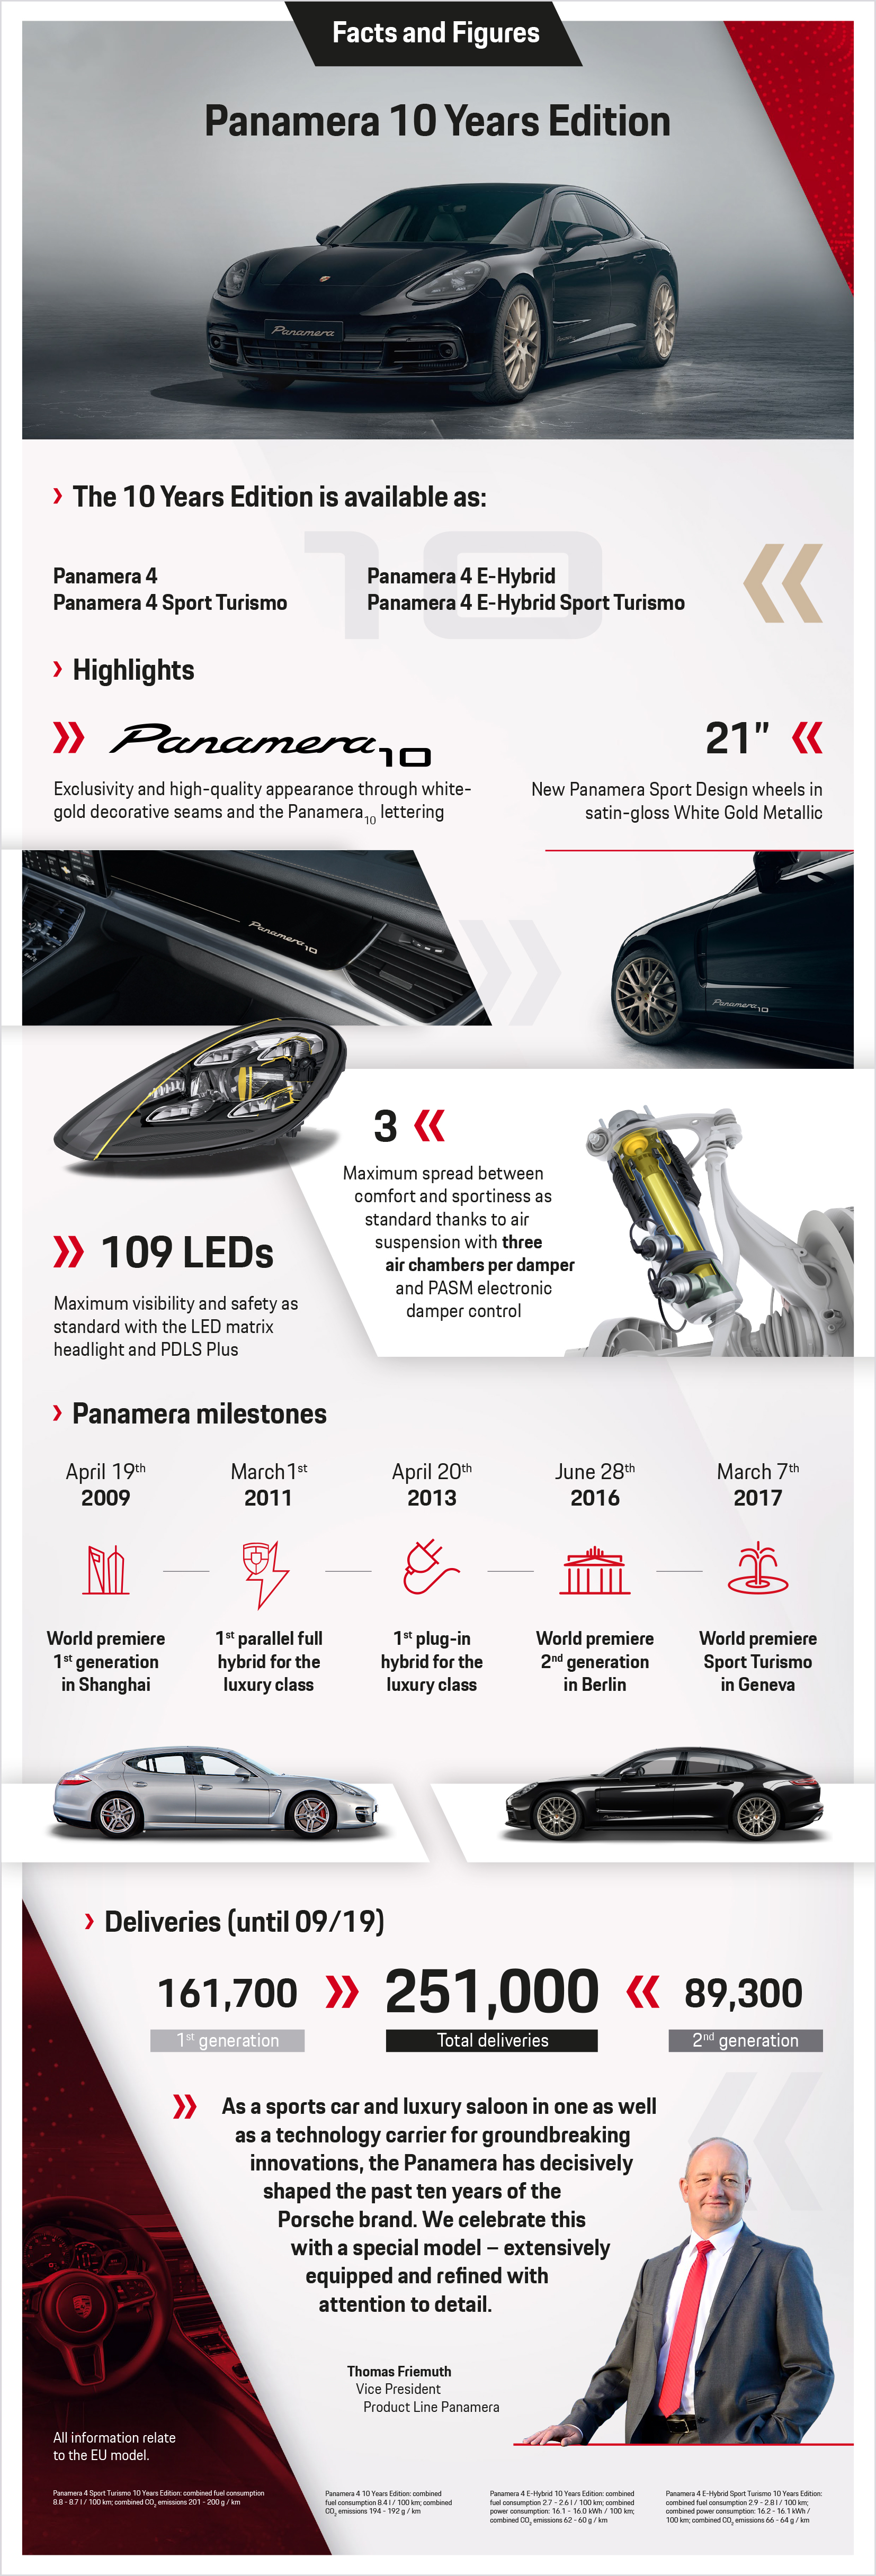 Panamera 10 Years Edition, Infographic, 2019, Porsche AG